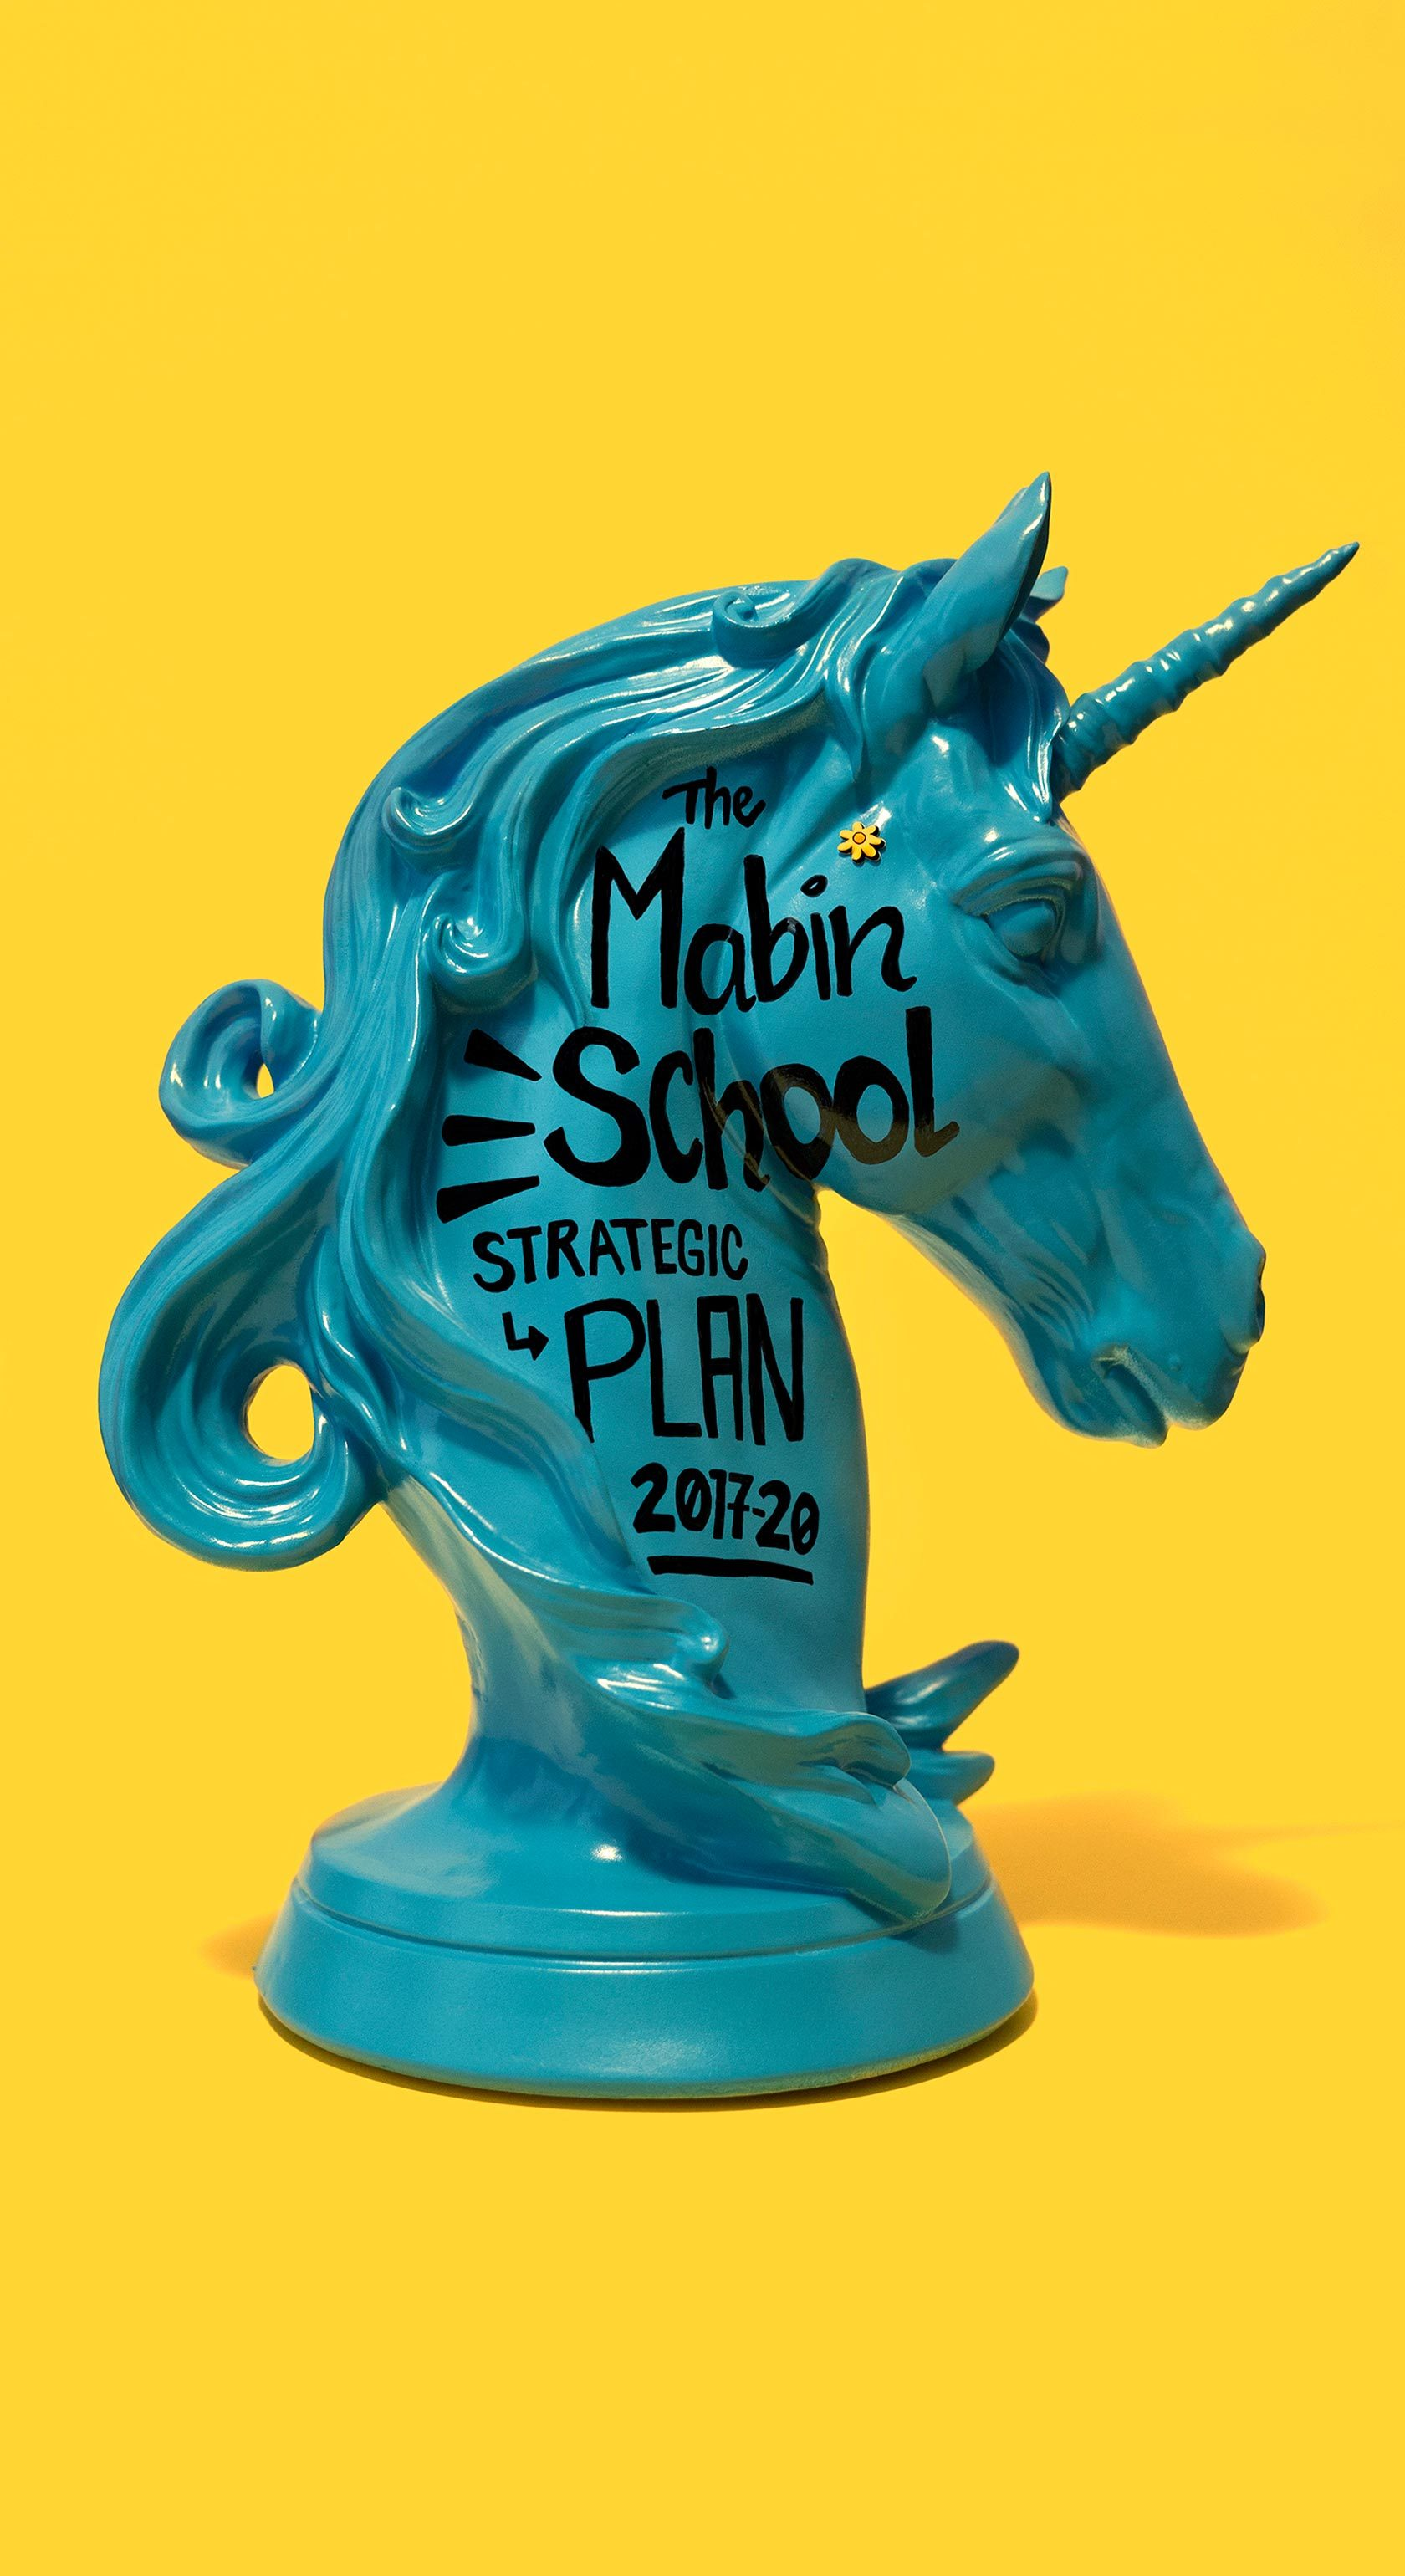 The Mabin School Art Direction by Furia